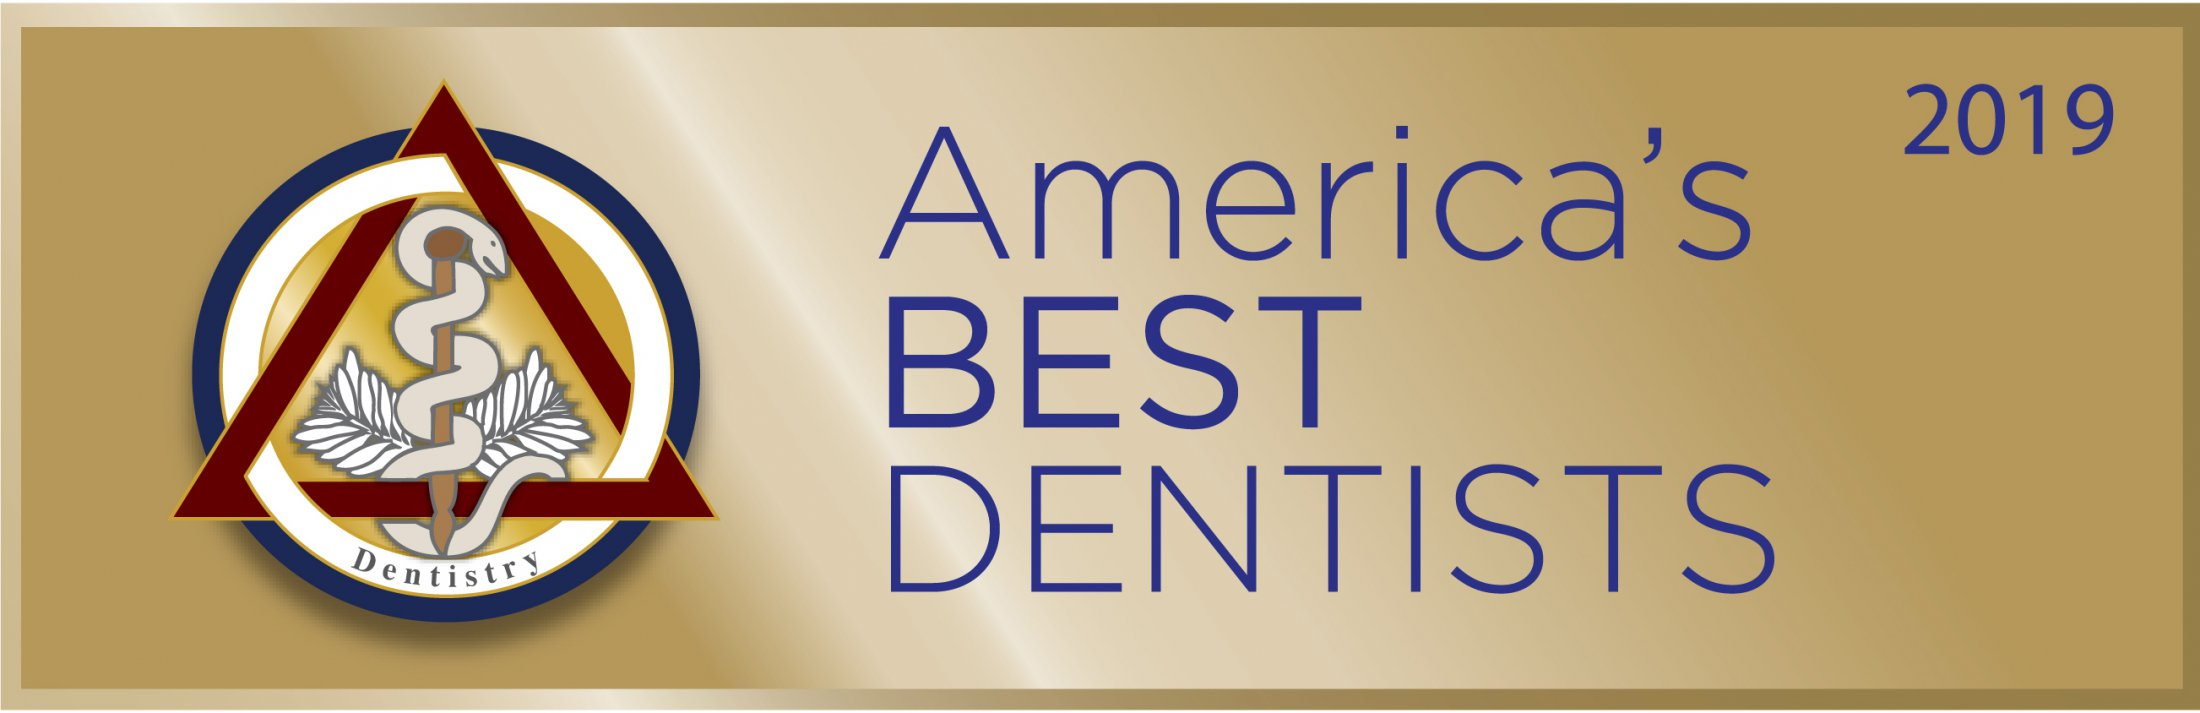 americas best dentist